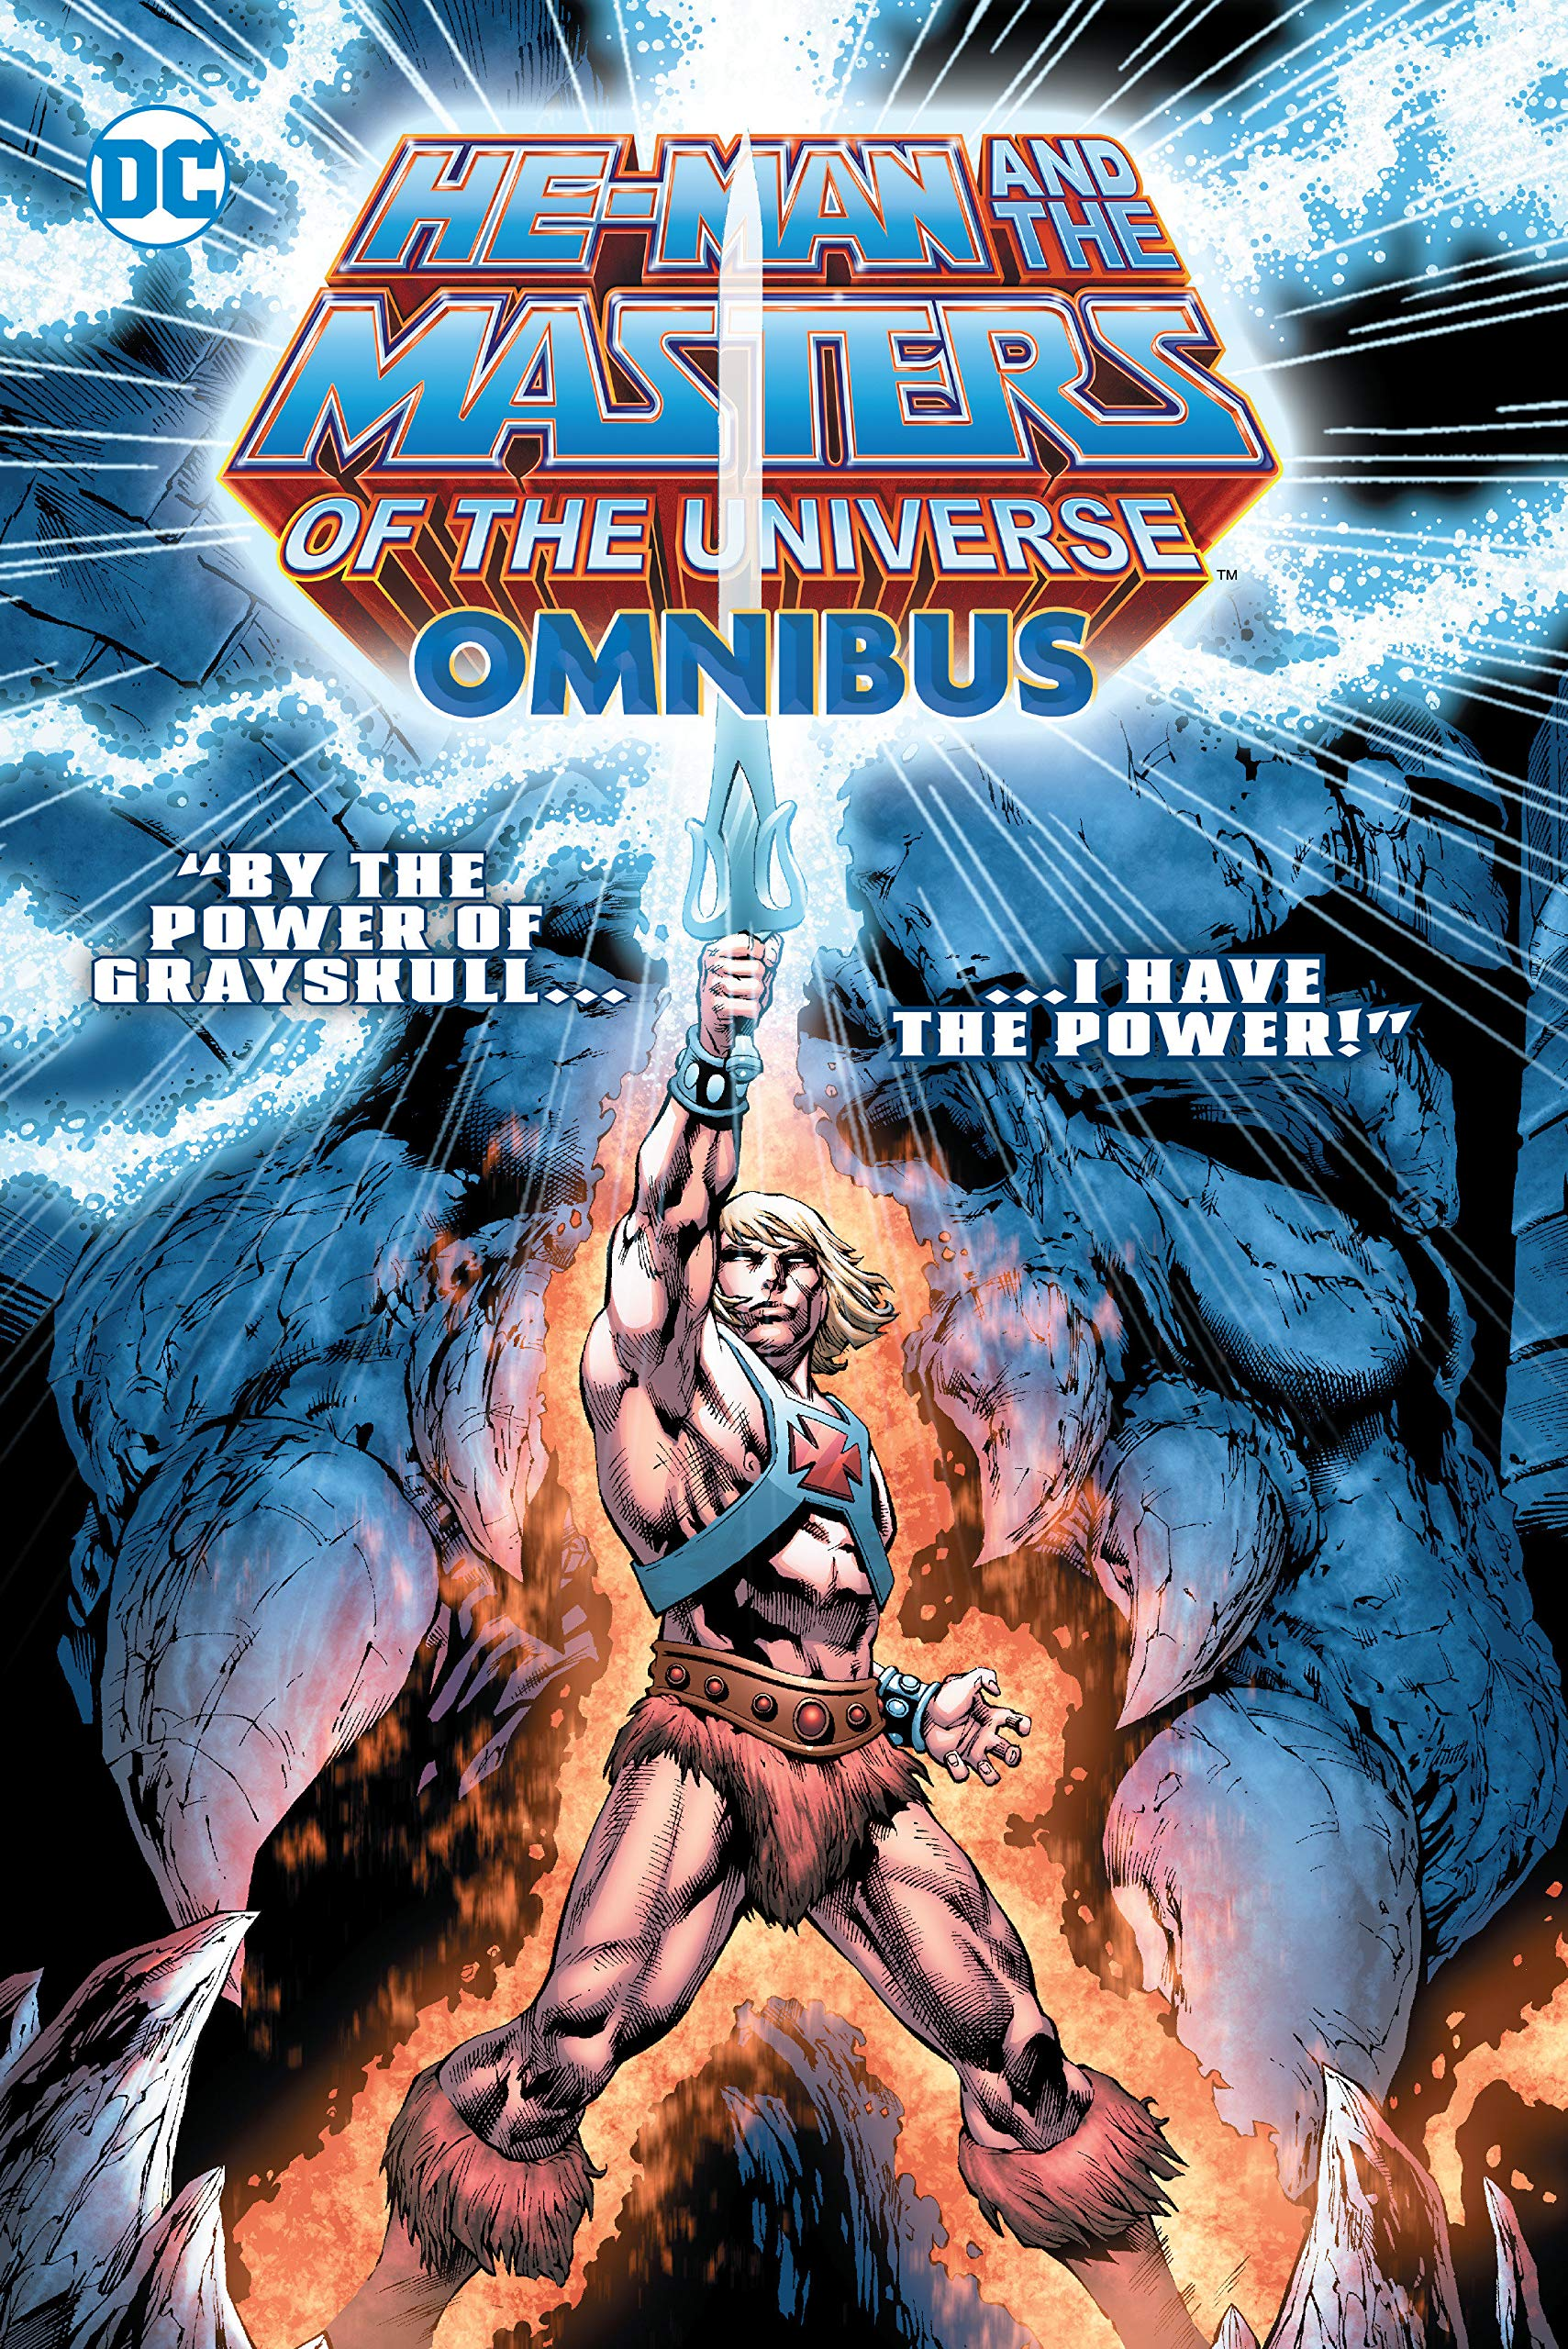 He-Man and the Masters of the Universe Omnibus by DC Comics